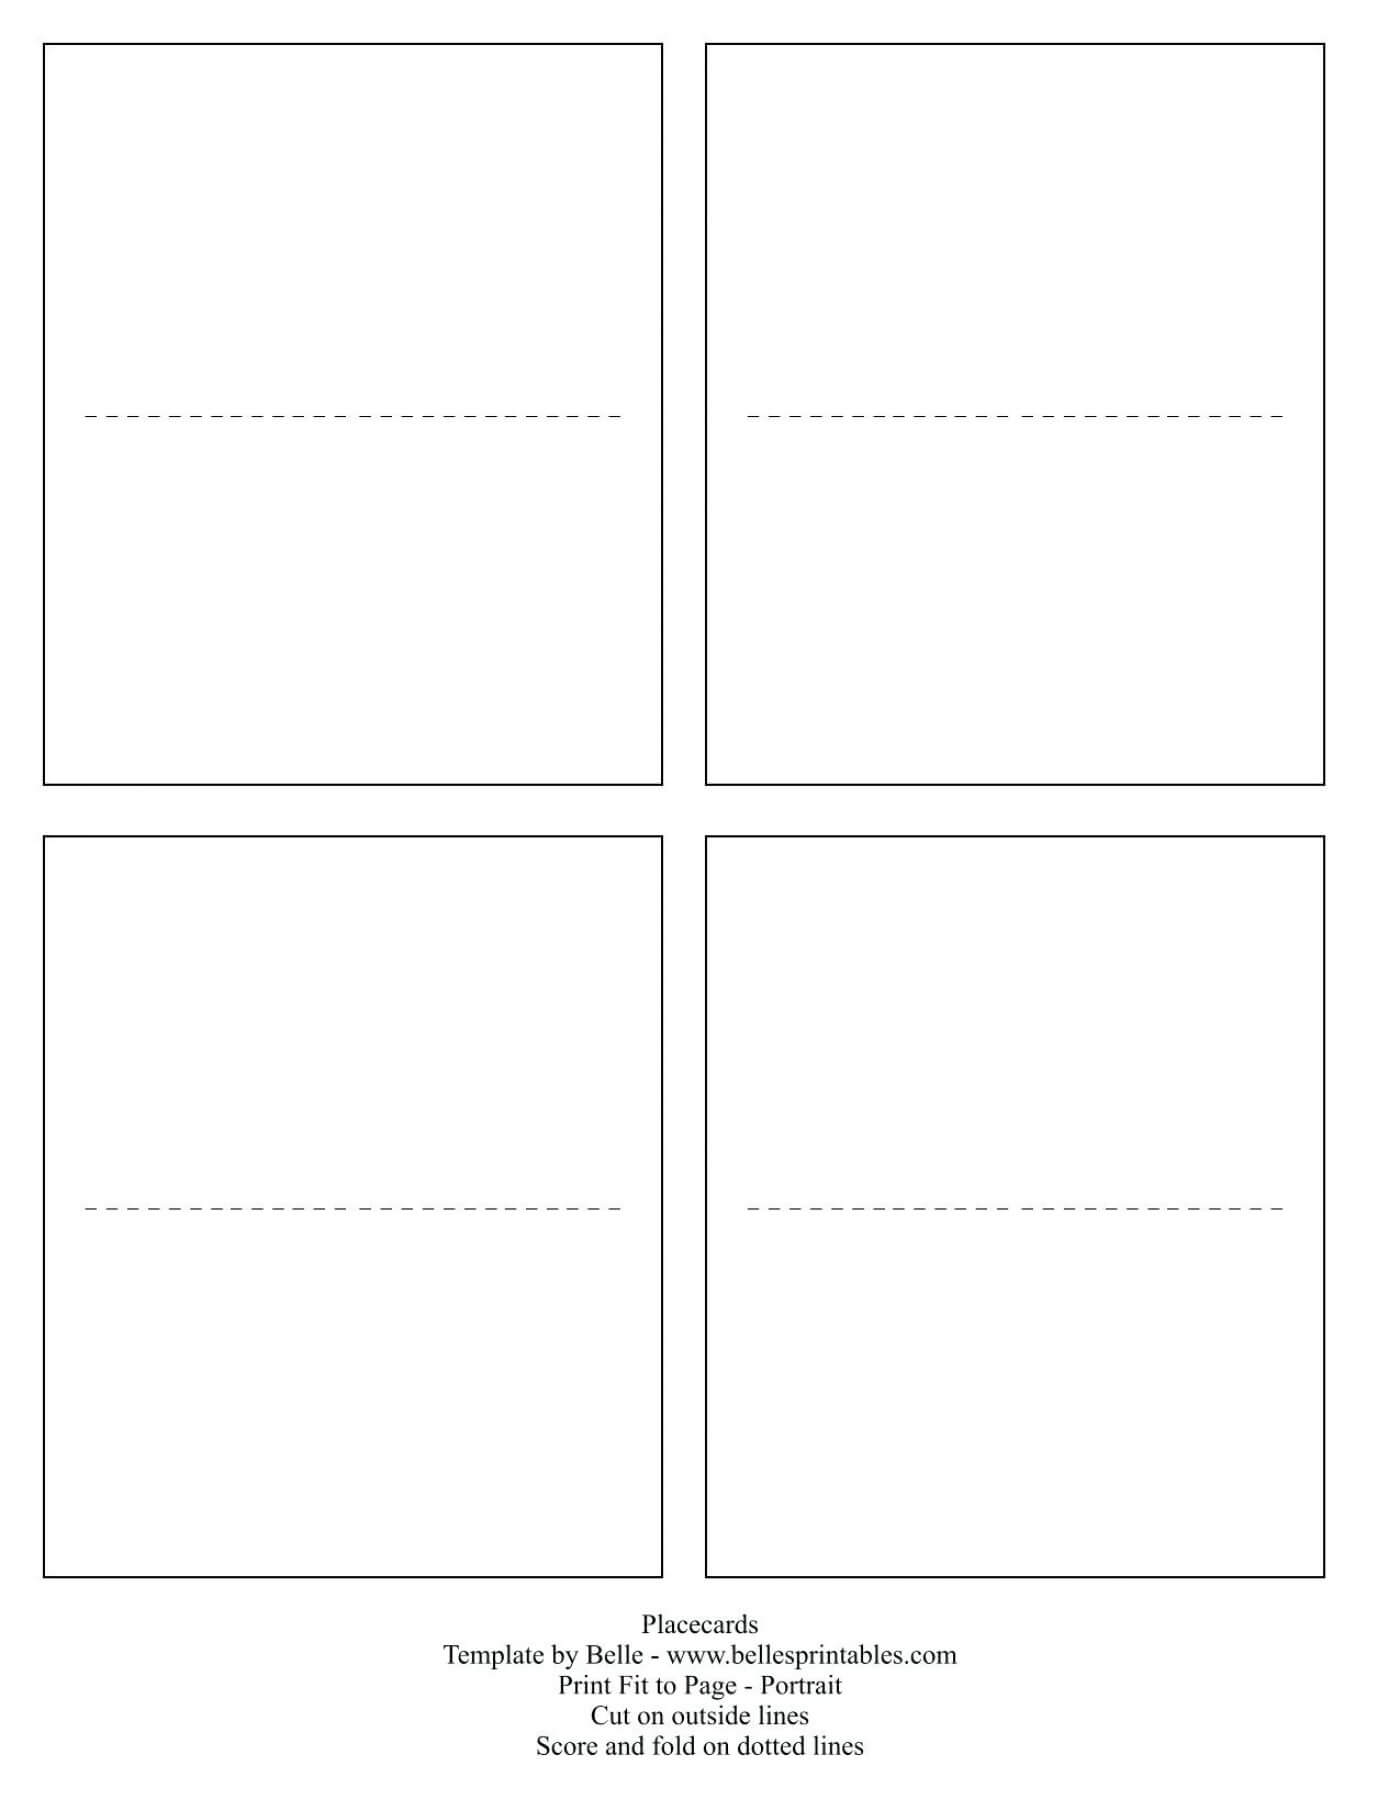 003 Template Ideas For Place Cards Melanie Placecards Inside Place Card Template Free 6 Per Page